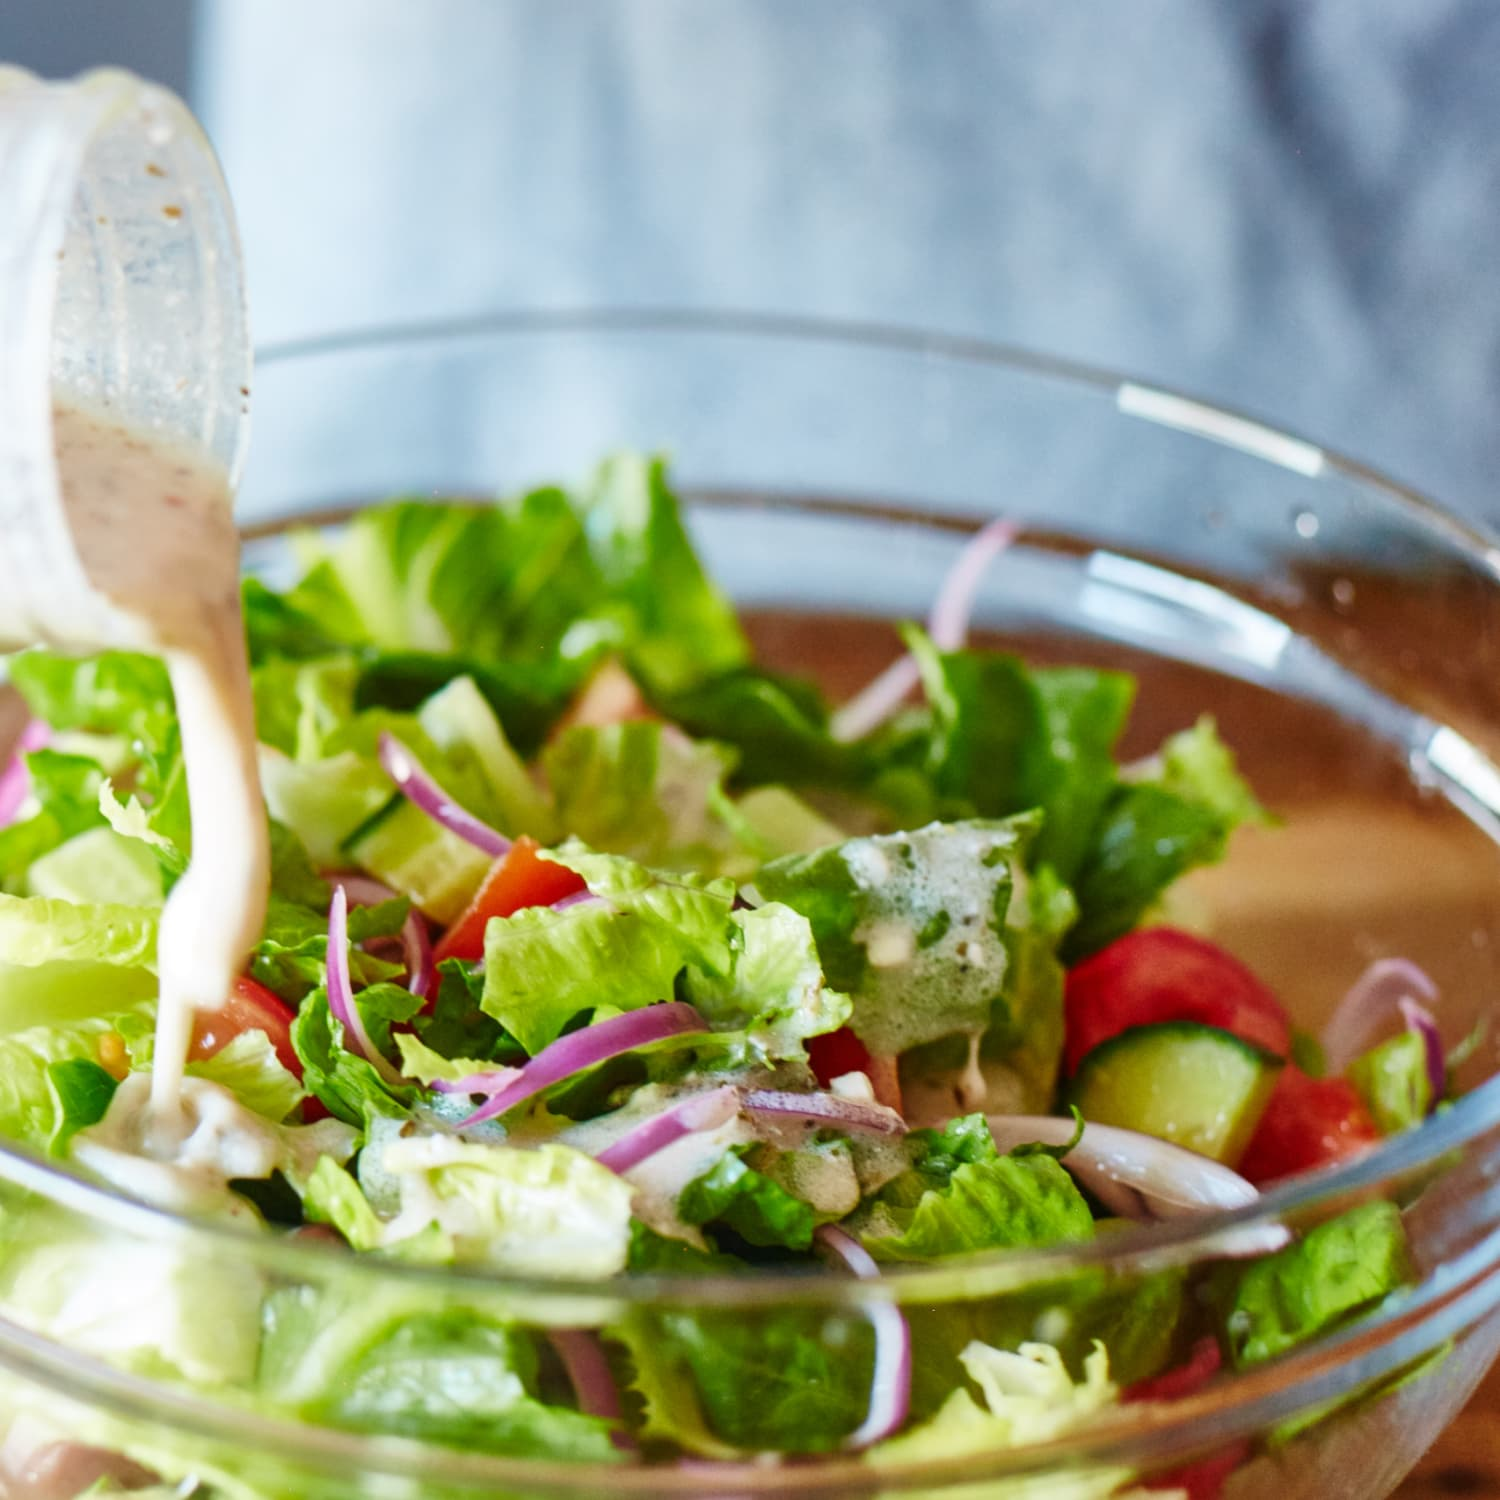 Image result for The Tossed Mixed Salad Recipe, Let Us Take A Deep Look